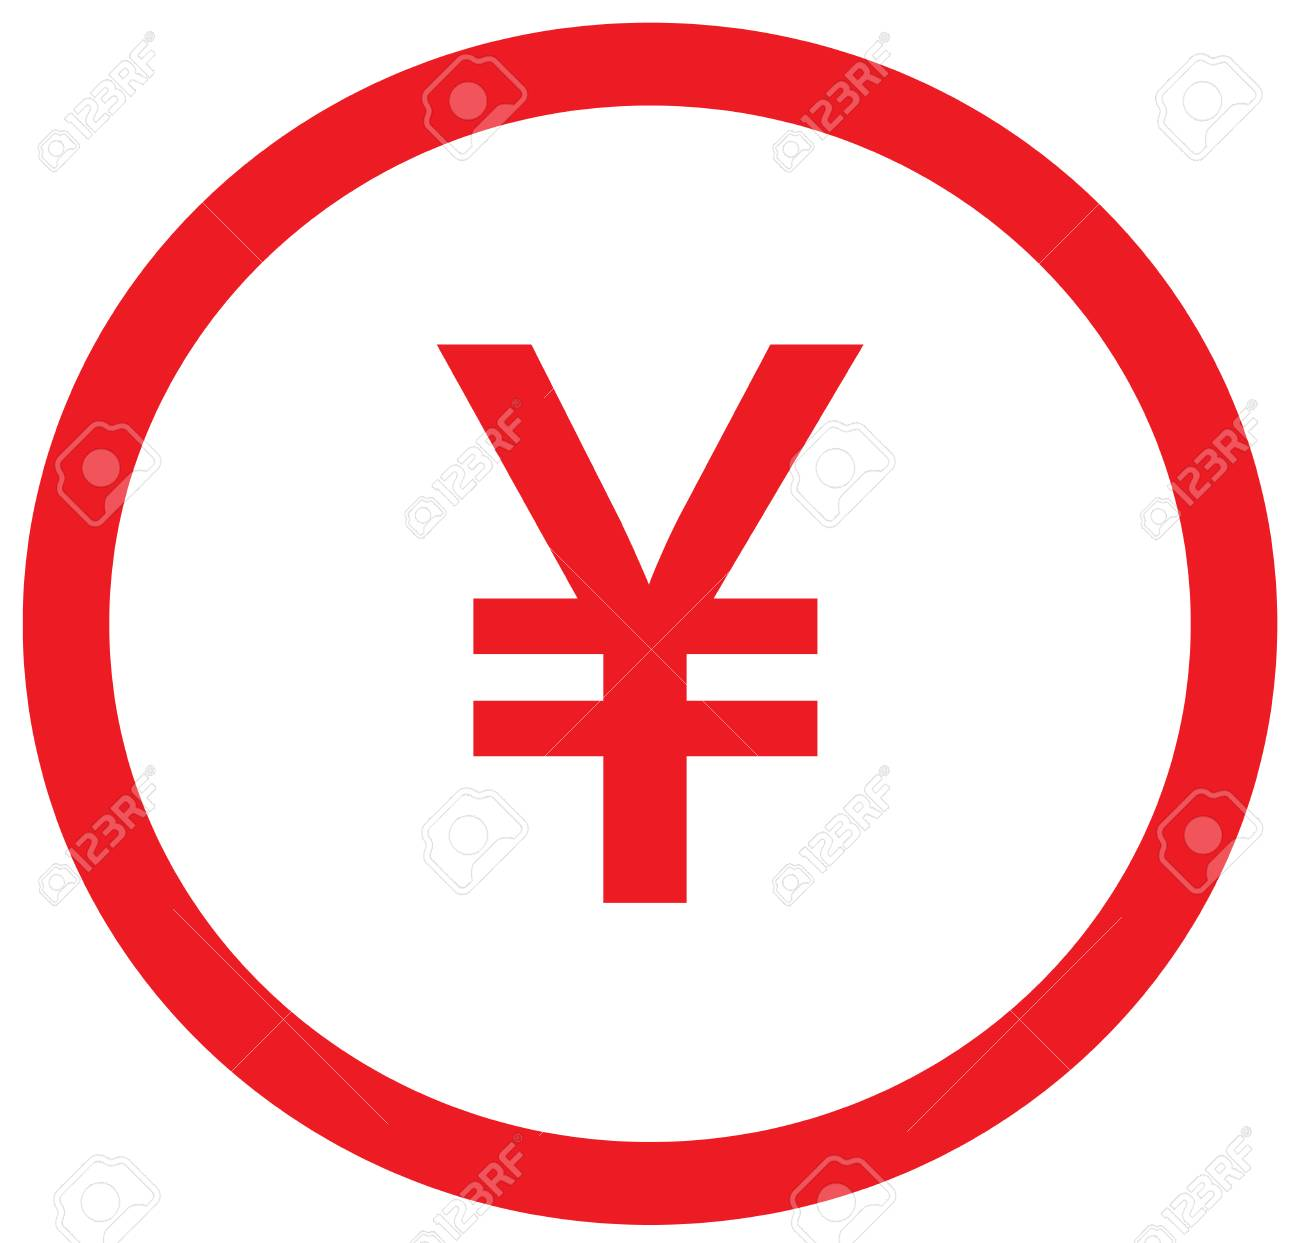 Yen Yuan Or Renminbi Currency Icon Vector Over A Coin Symbol